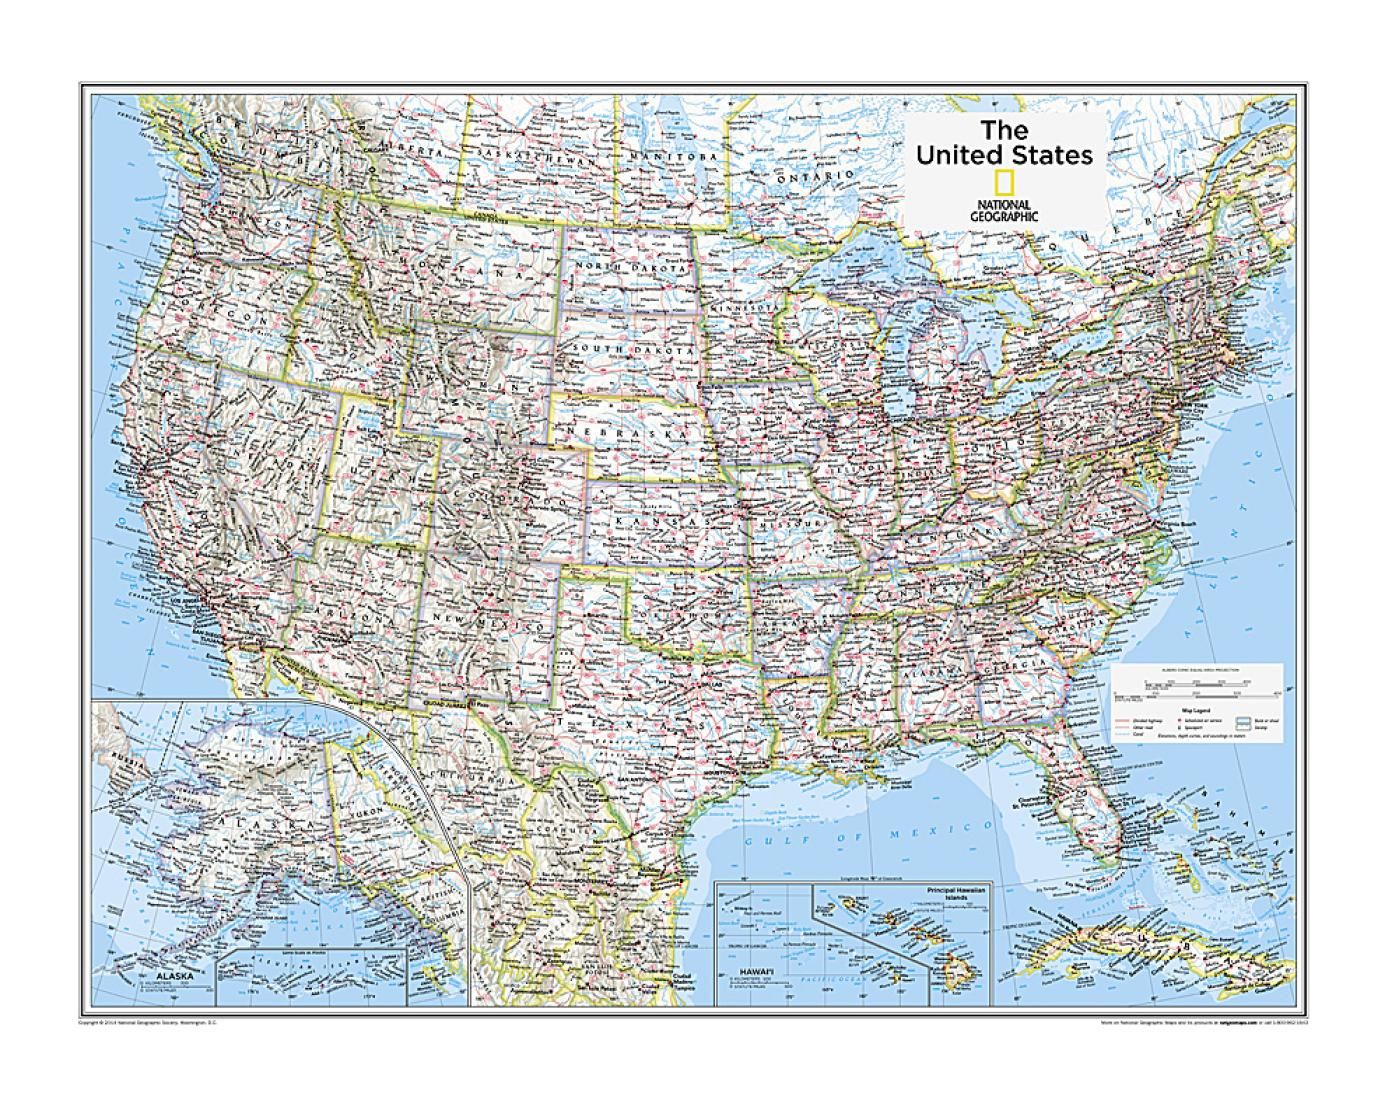 Picture of: United States Political Map From National Geographic Atlas Of The World 10th Edition By National Geographic Maps